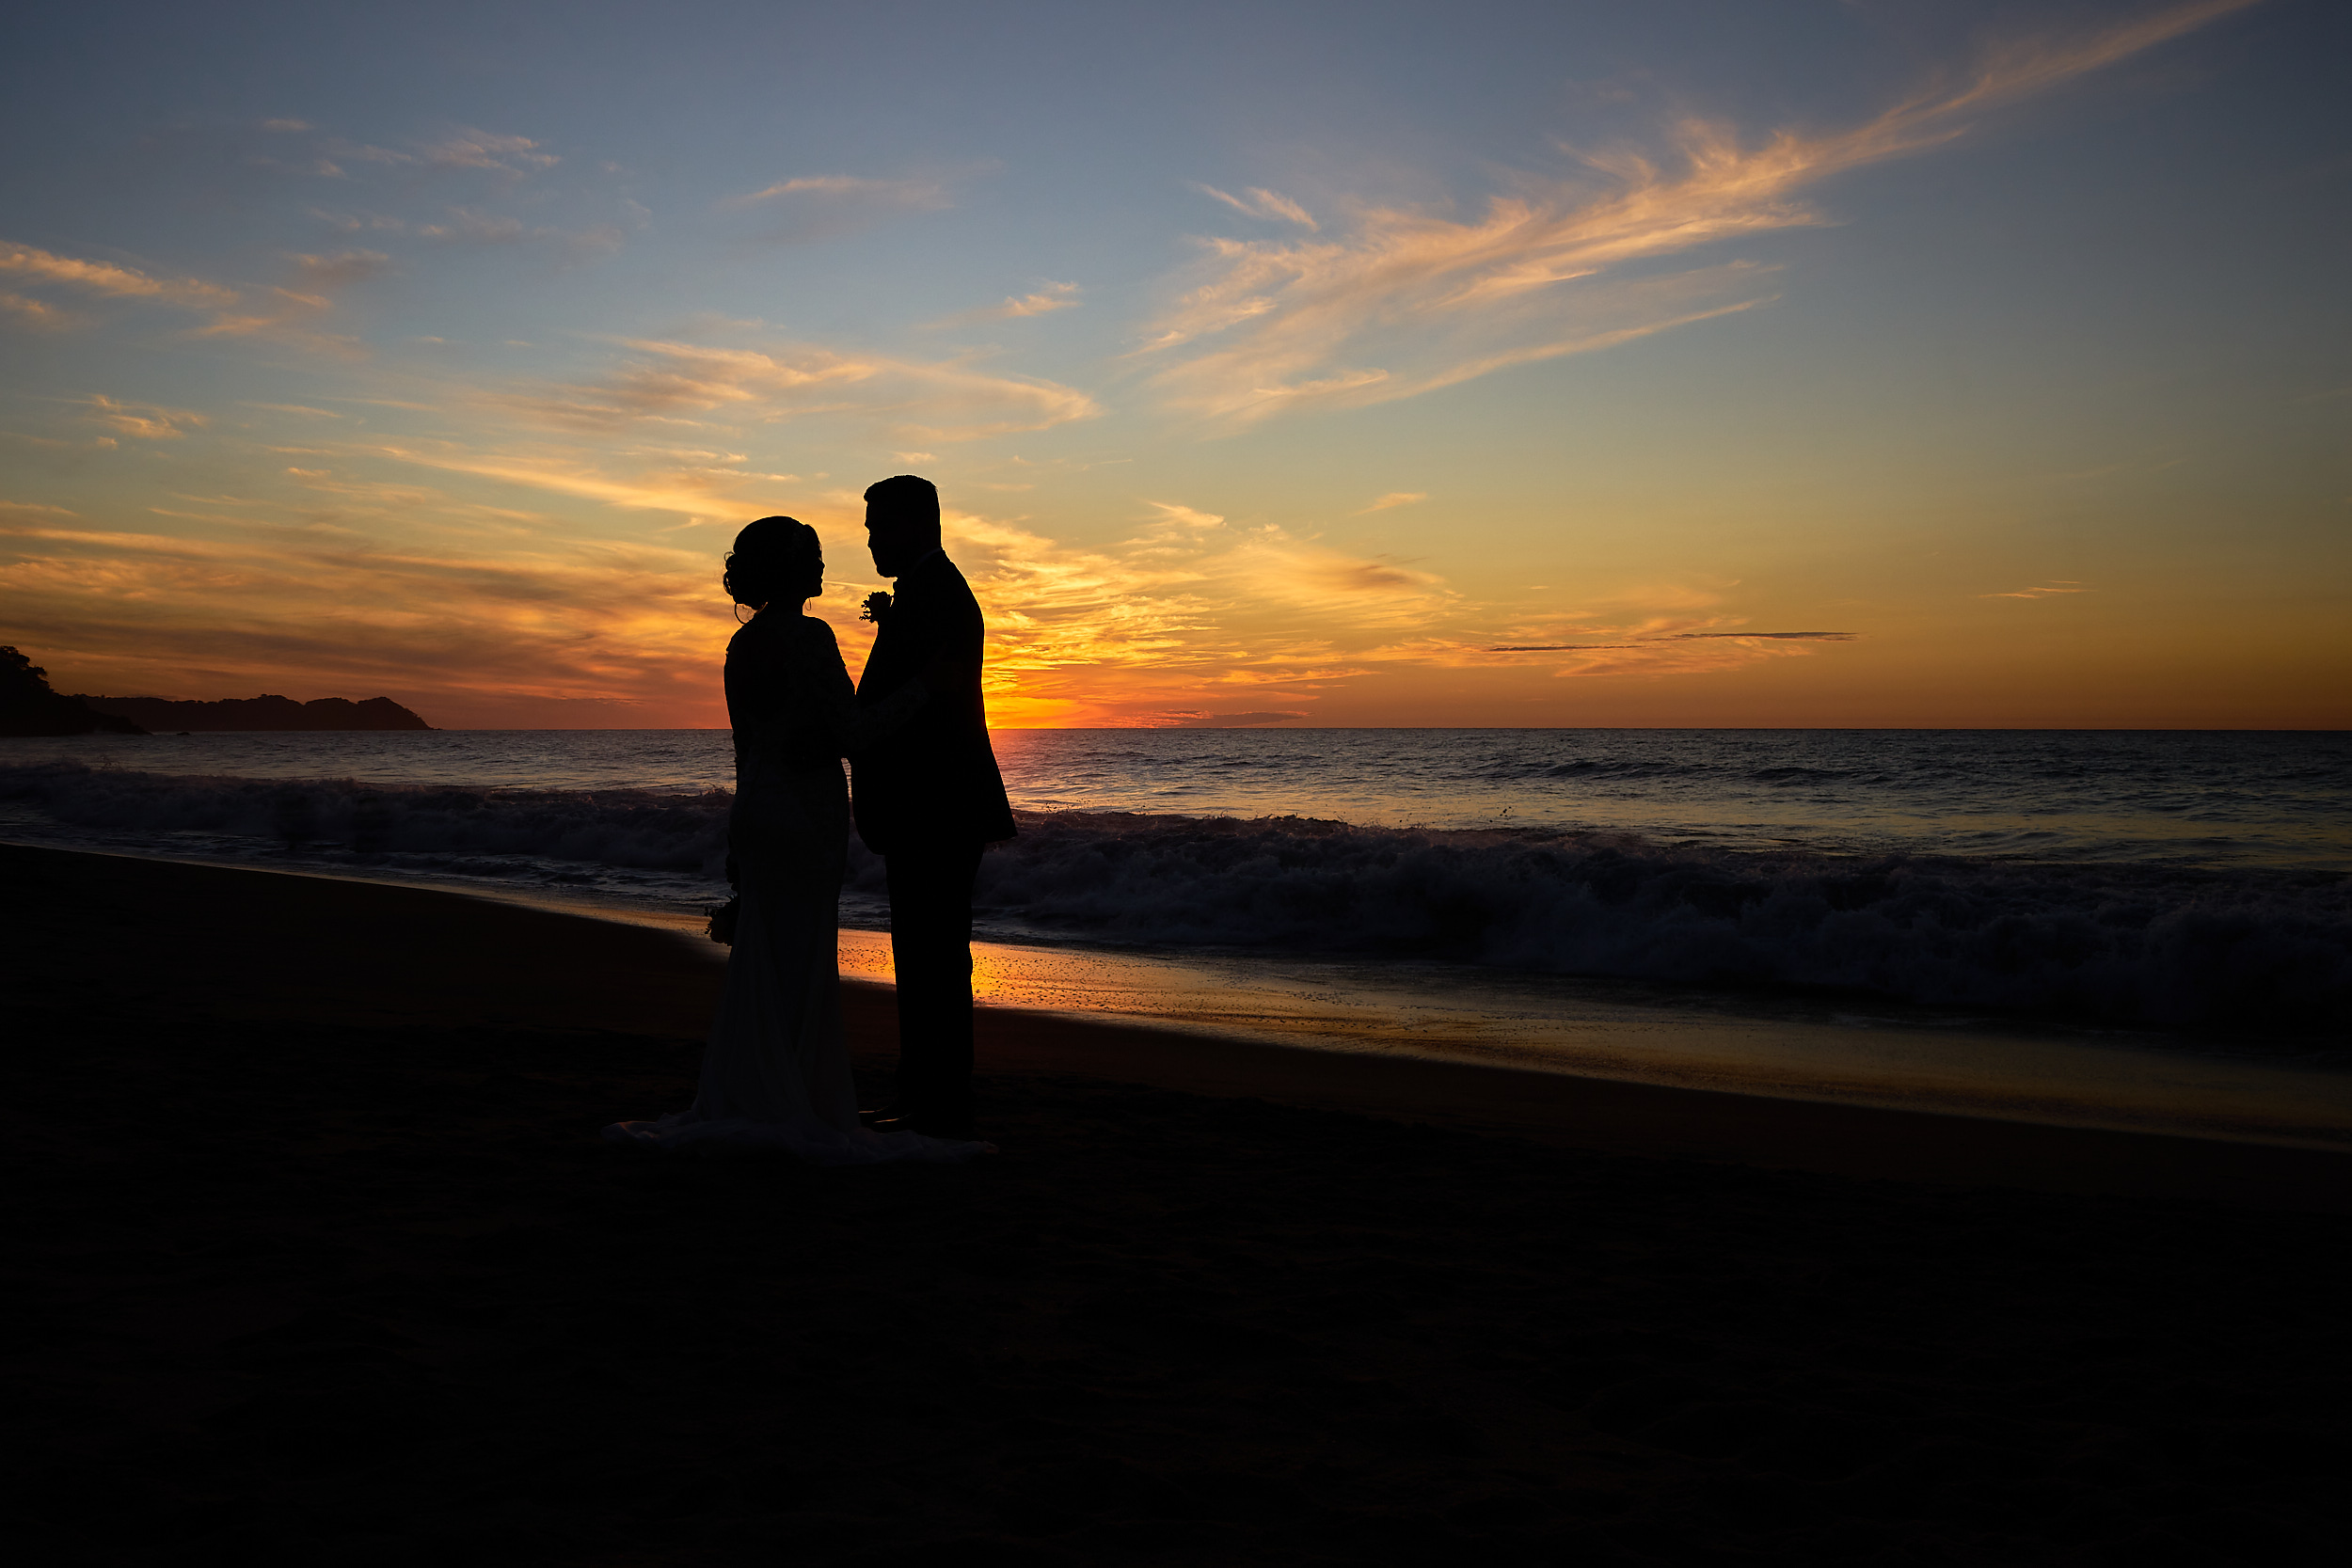 destination_wedding_photographer_wedding_photographyPuerto_Vallarta_AlexyRebeca_